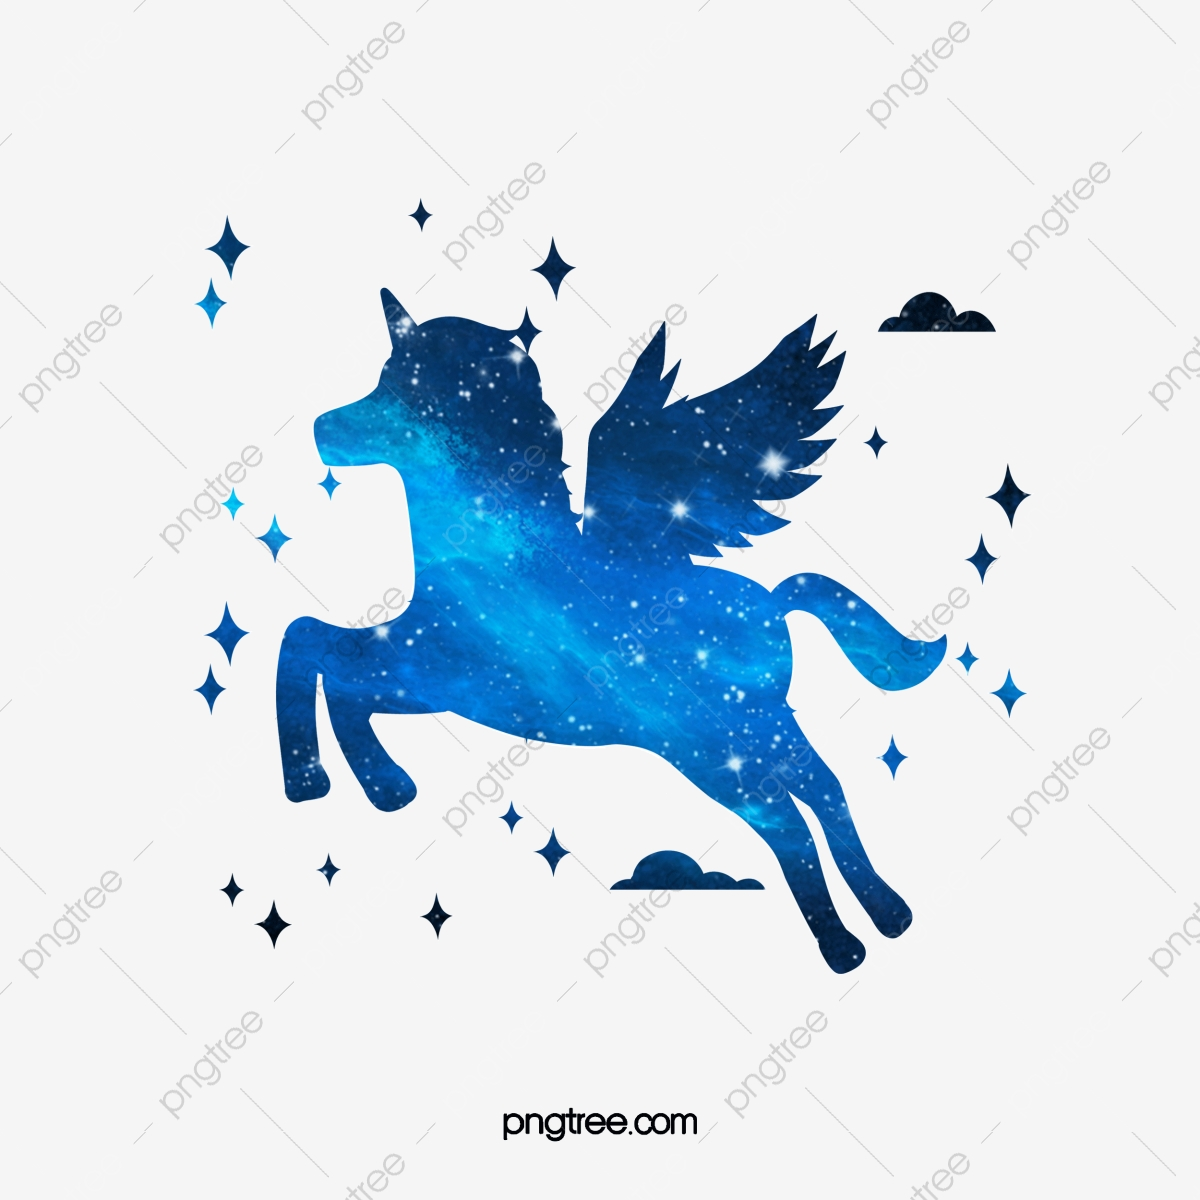 Aesthetic Blue Star Unicorn Silhouette Creative Aestheticism Rainbow Png Transparent Clipart Image And Psd File For Free Download